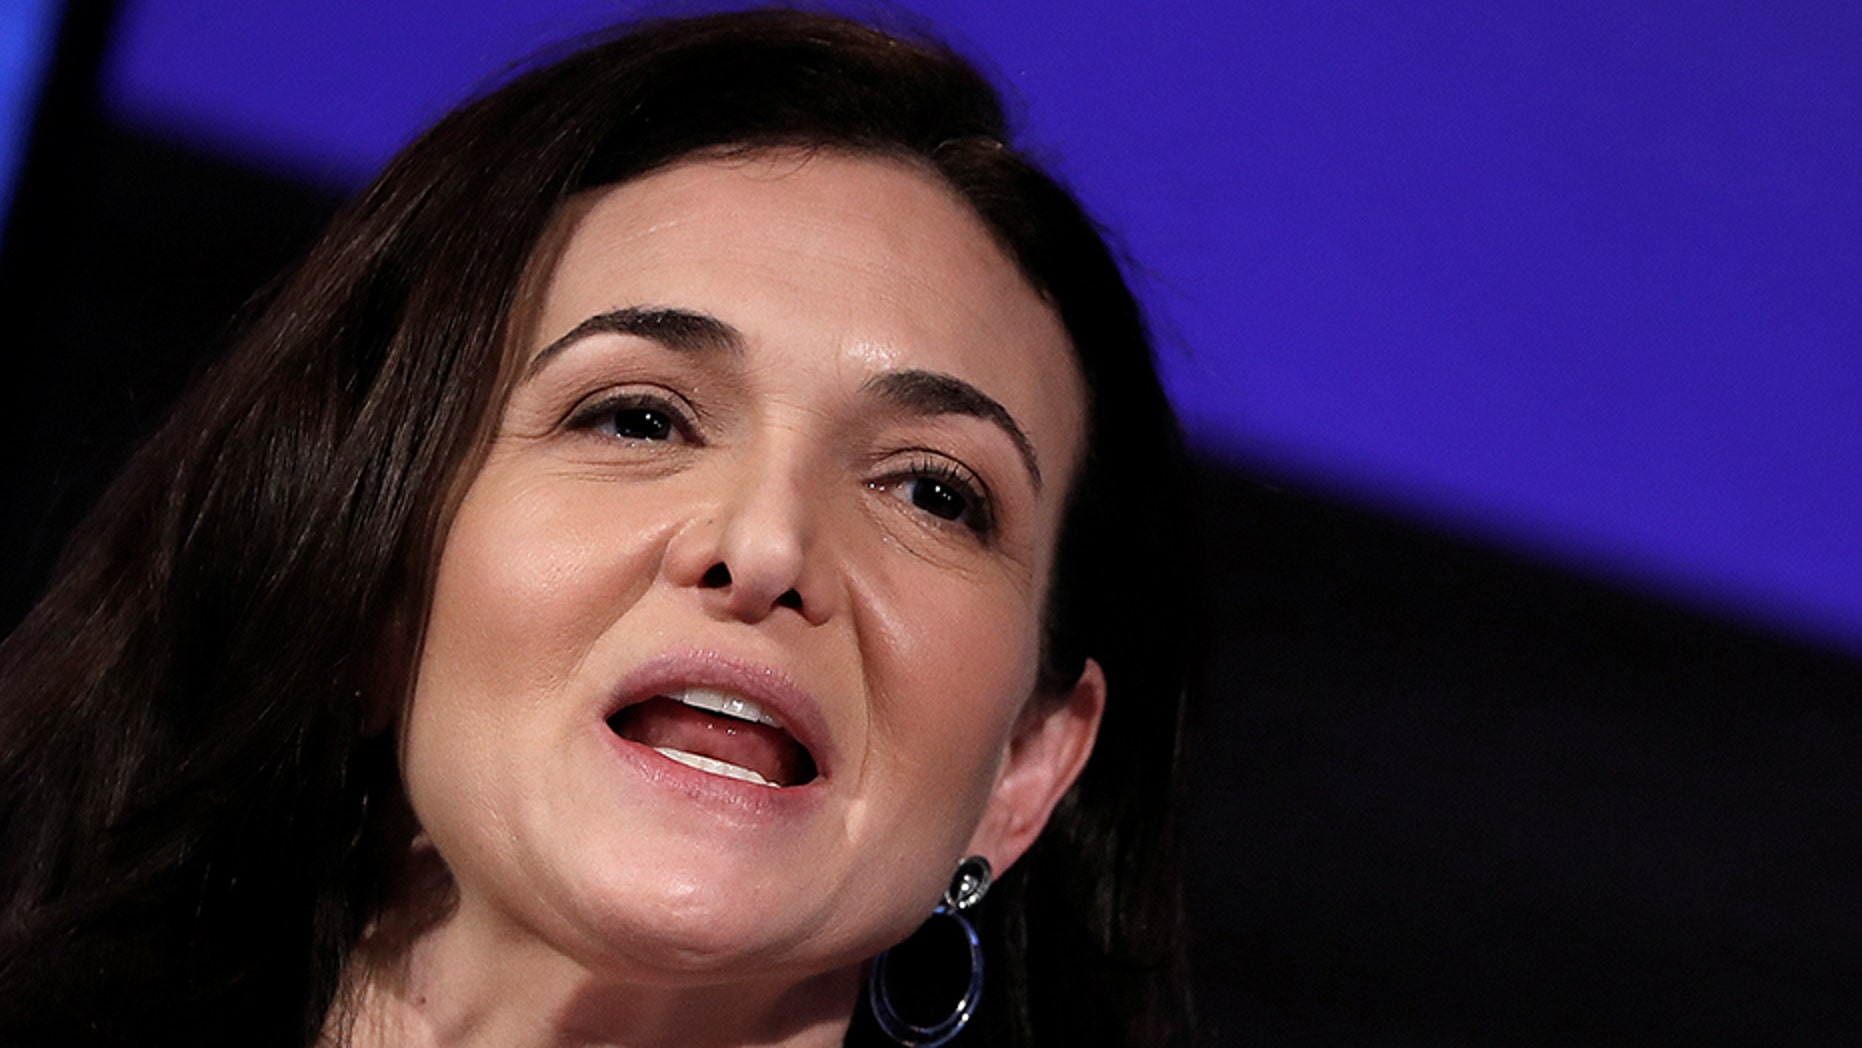 File photo - Sheryl Sandberg, Facebook's chief operating officer, addresses the Facebook Gather conference in Brussels, Belgium January 23, 2018. (REUTERS/Yves Herman)